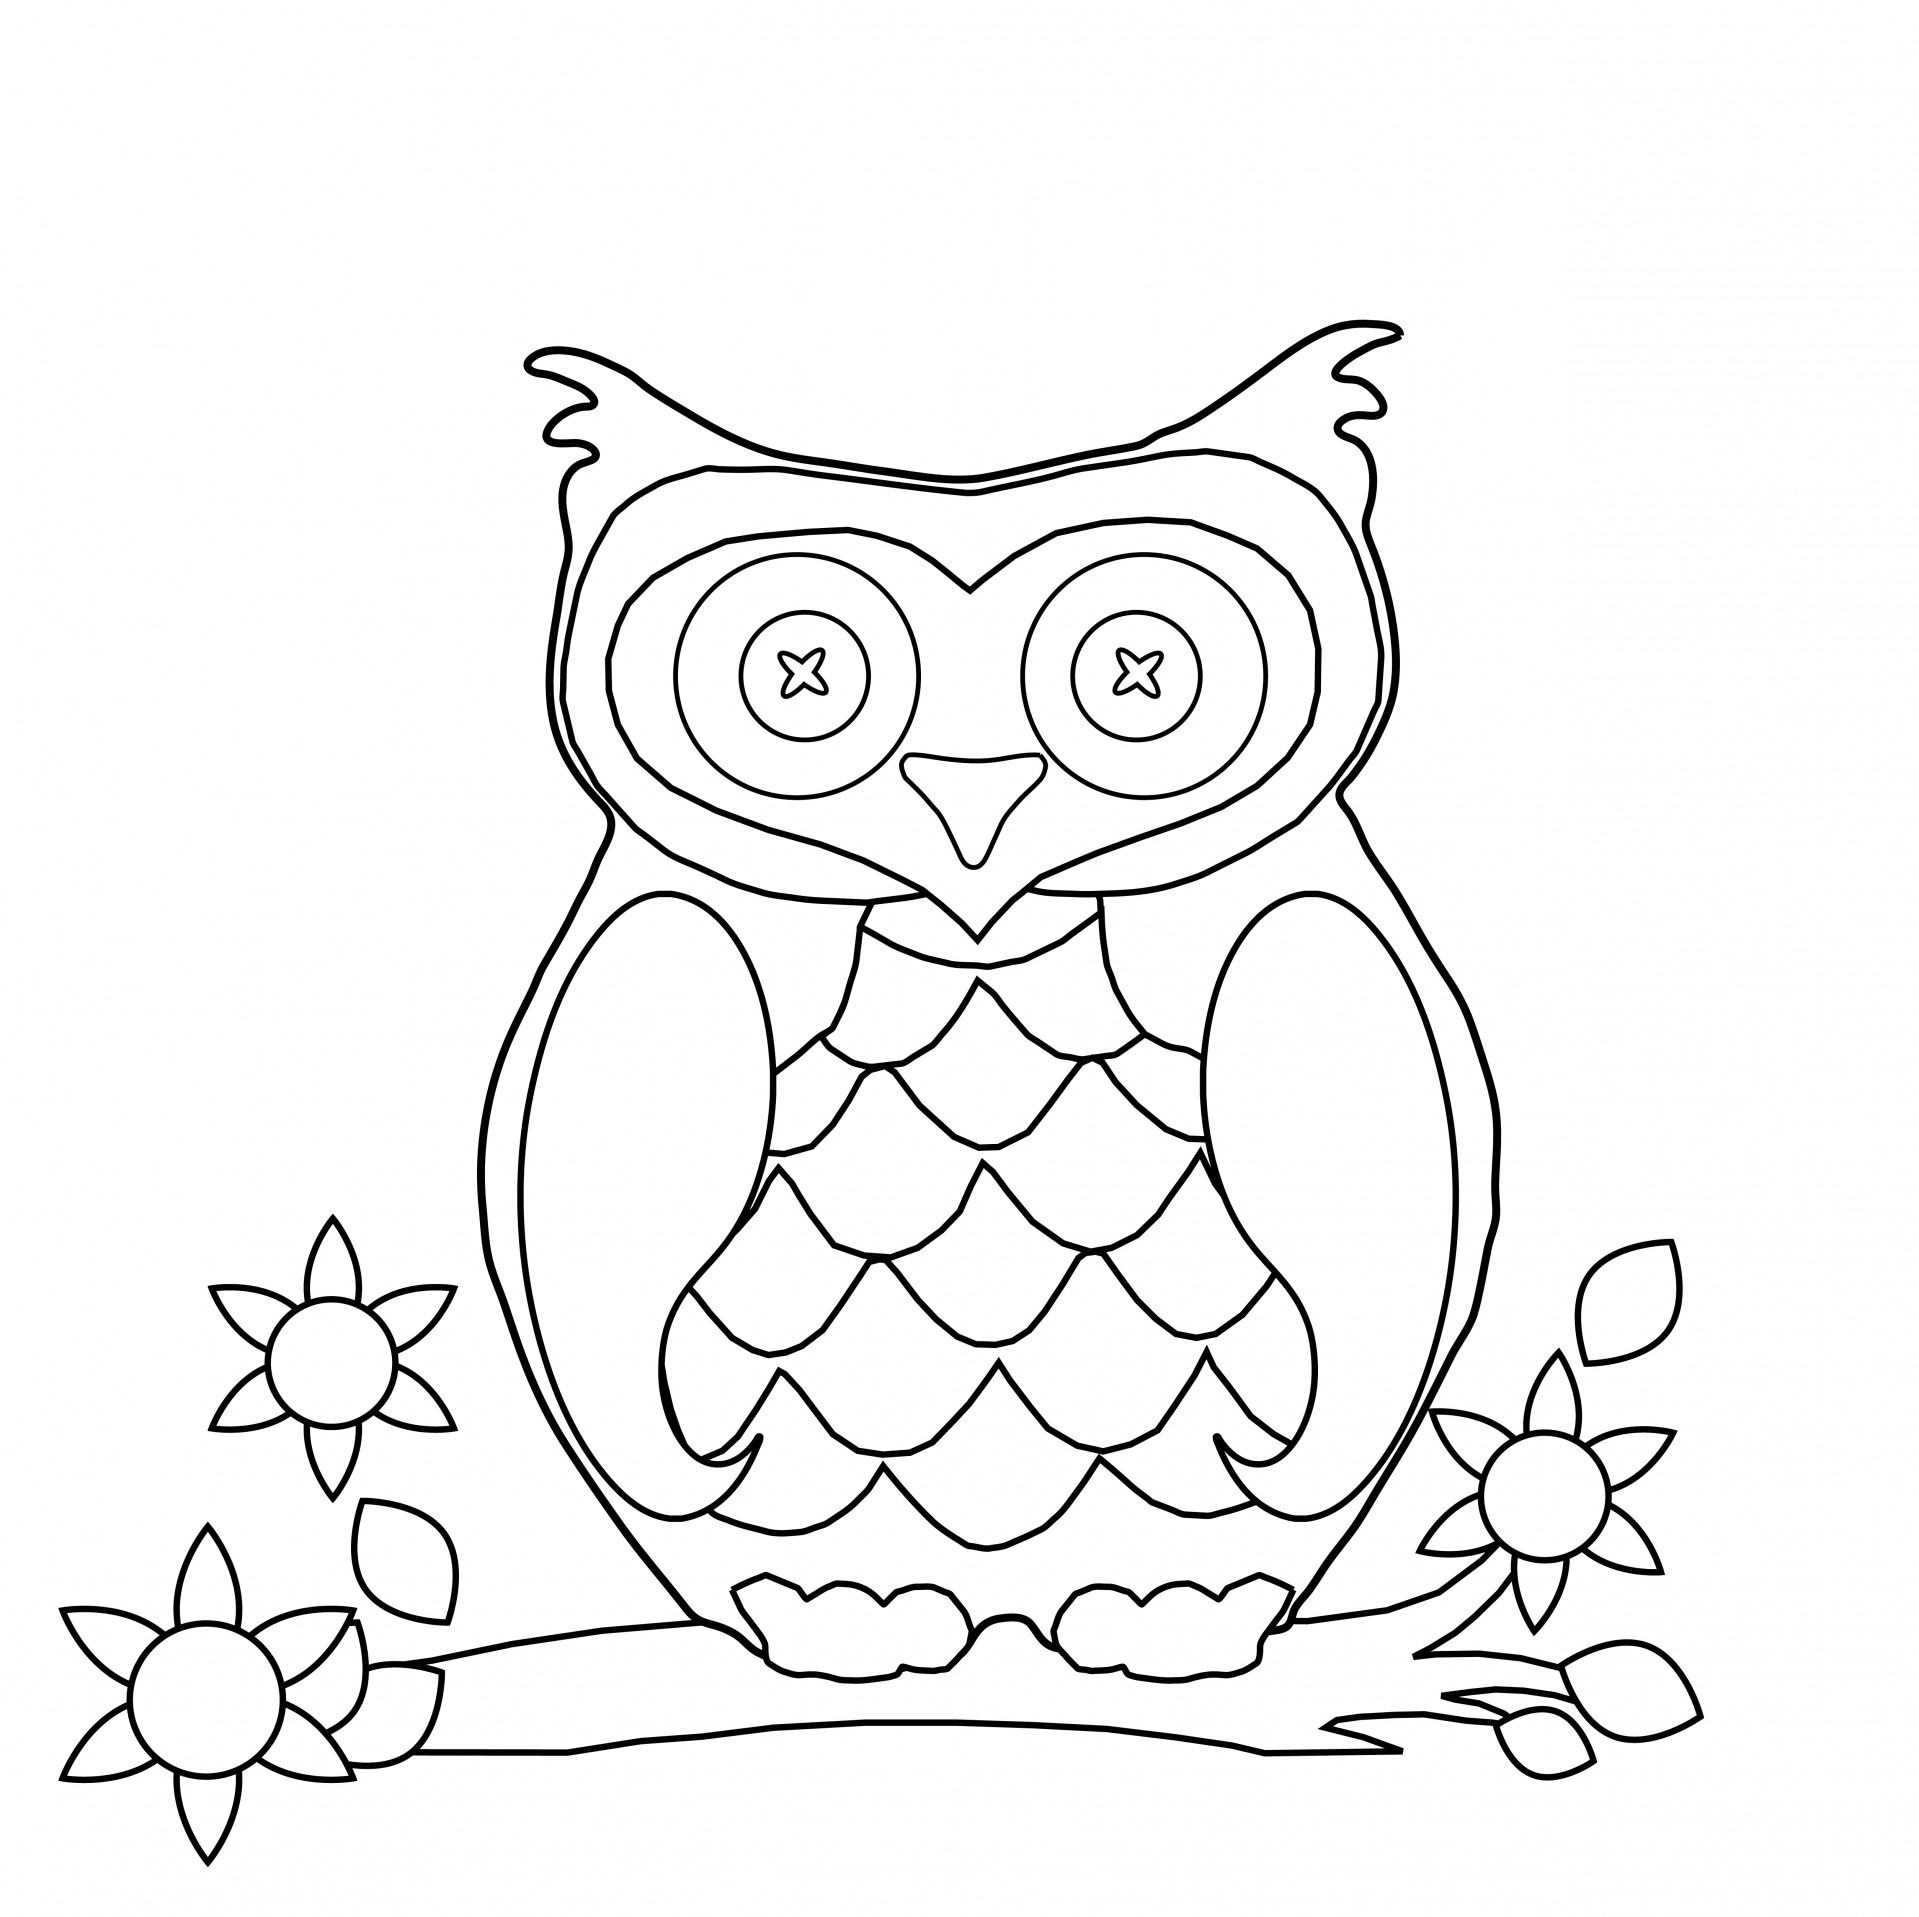 Make Any Picture A Coloring Page With Ipiccy